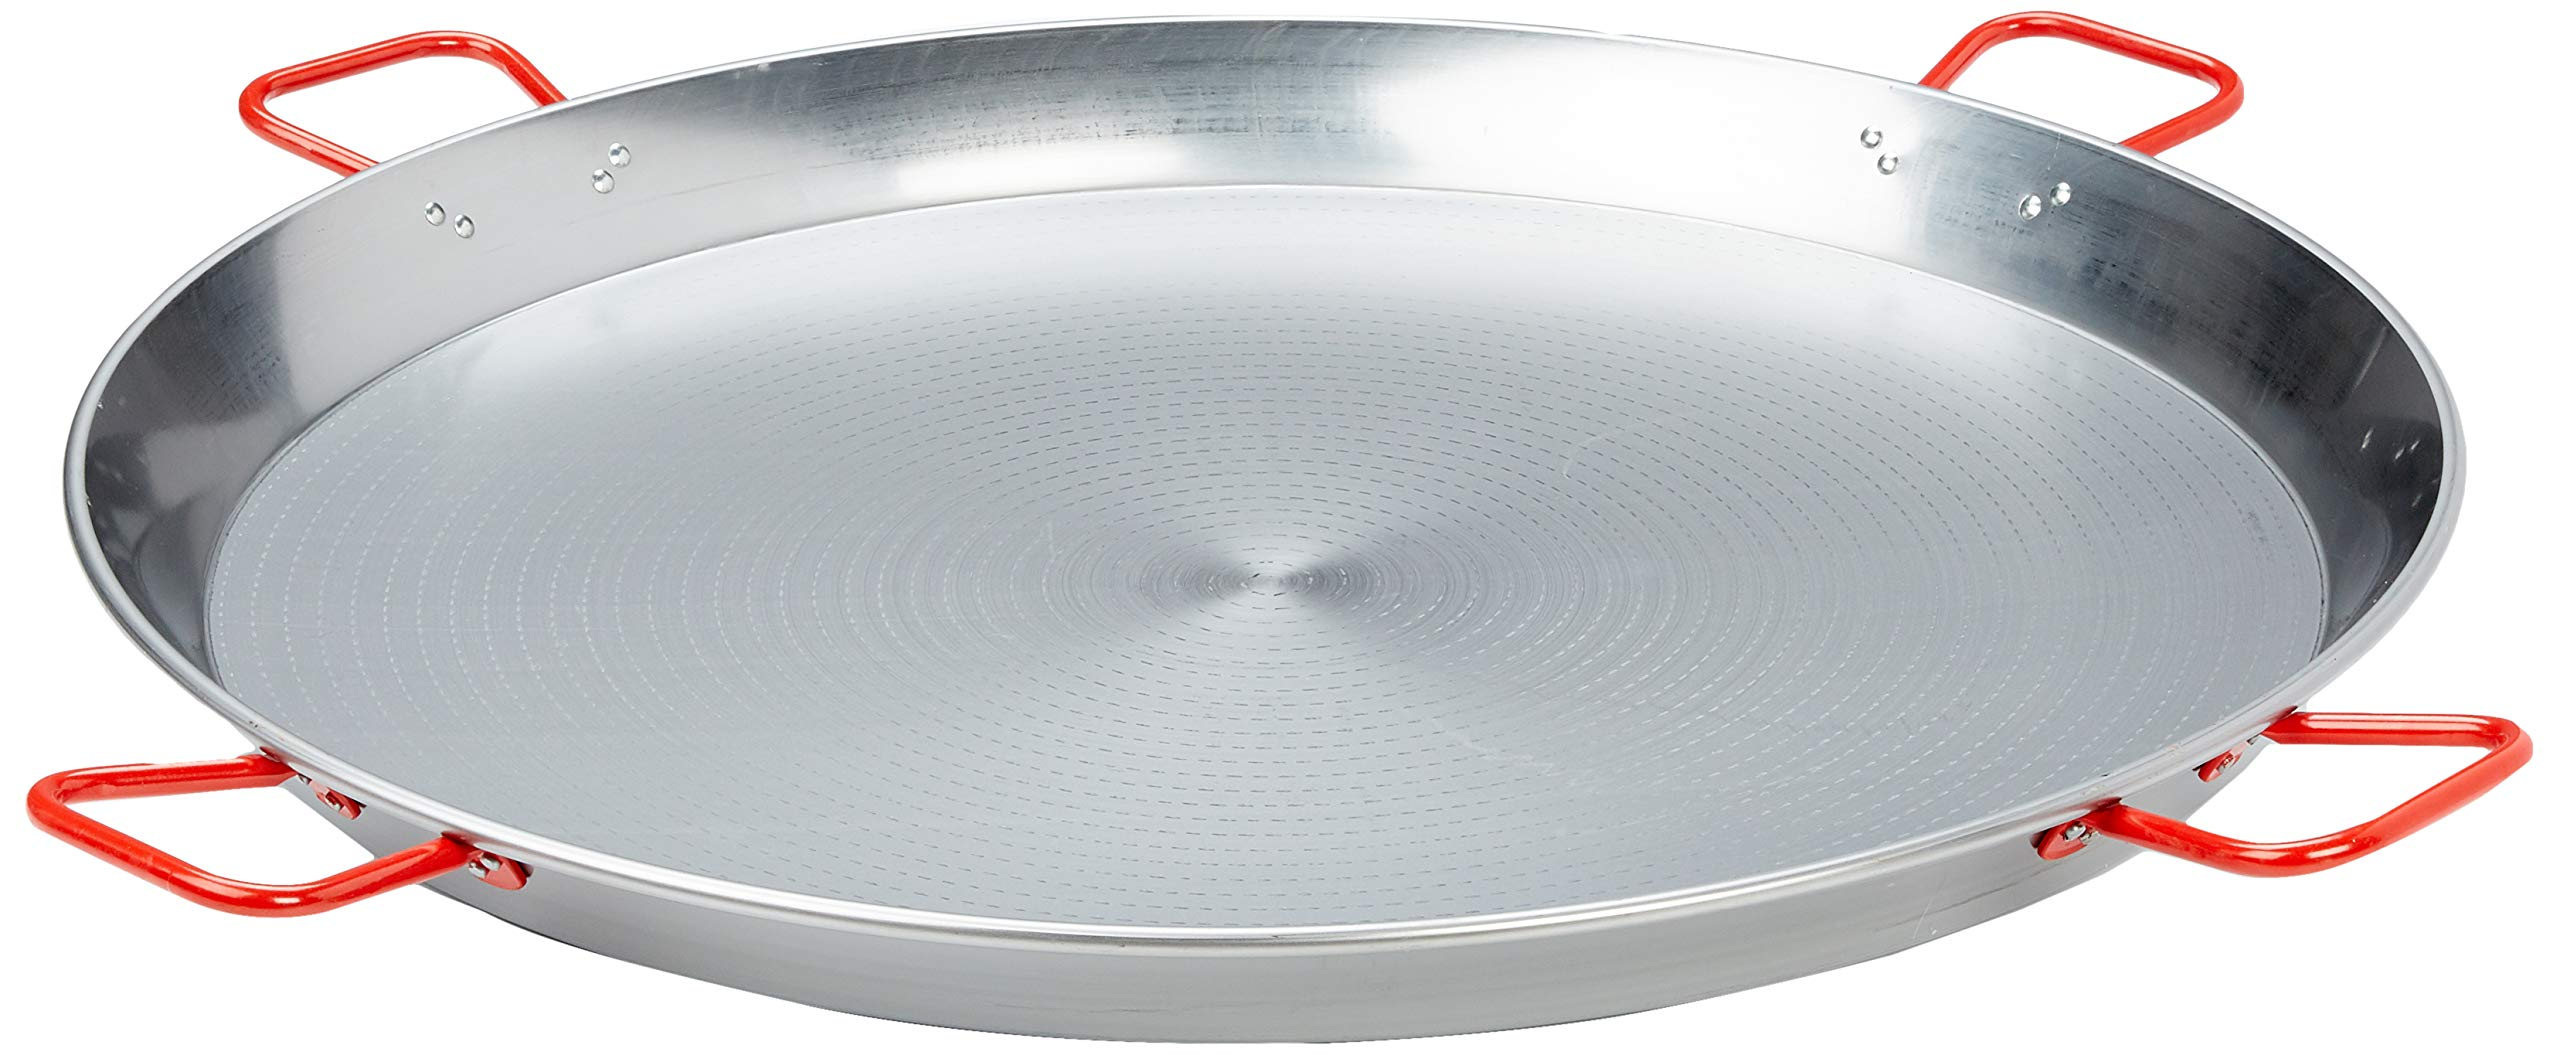 La Ideal 071052 Polished Steel Paella Pan, 35 1/2-Inch, Gray/Red by La Ideal